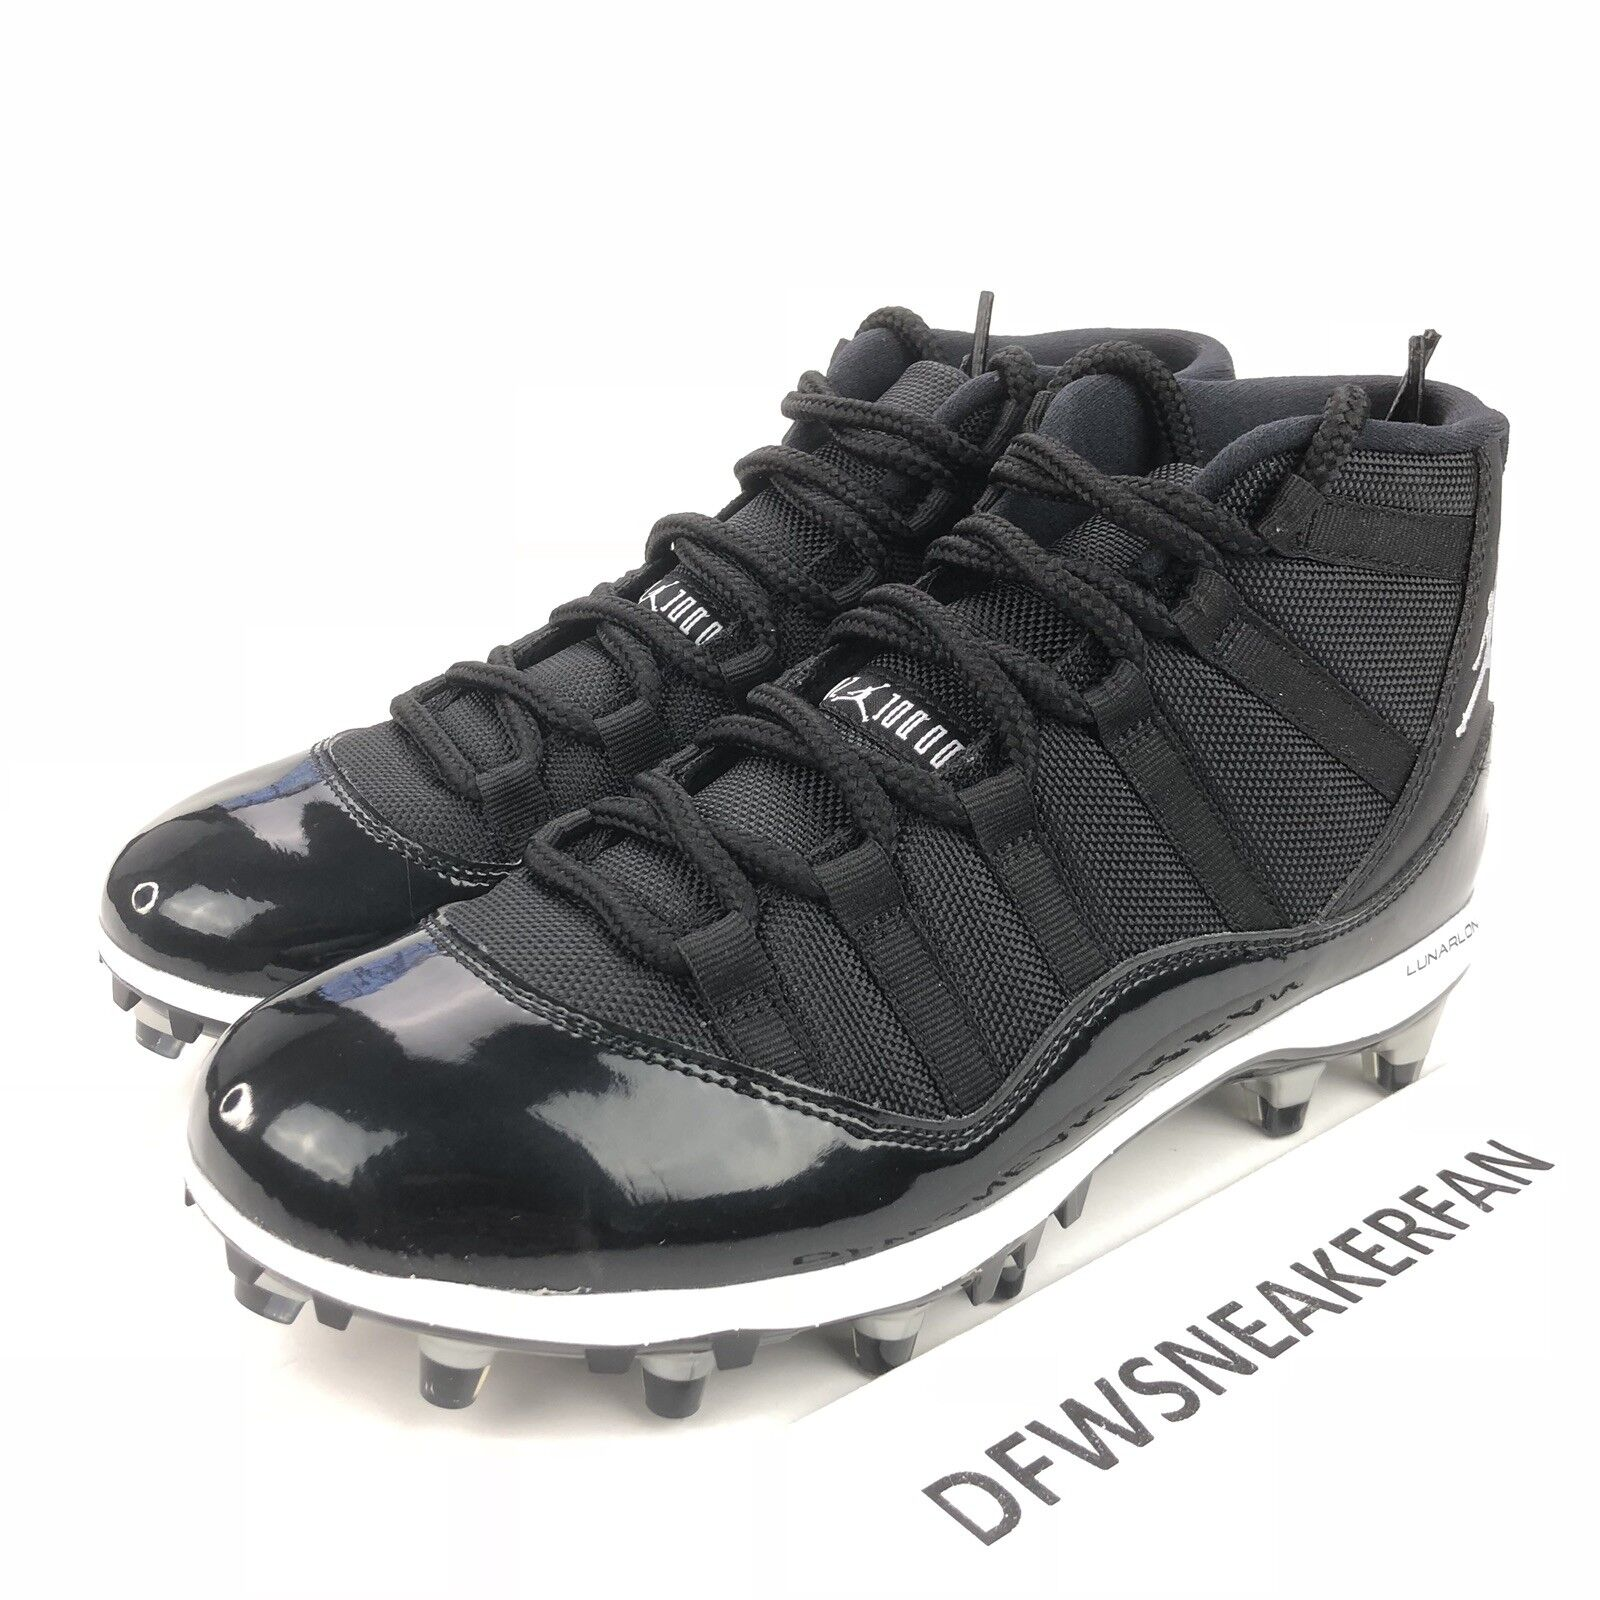 online store fec35 0a308 Nike Air Jordan XI XI XI 11 Retro TD Men s 8.5 Black White Football Cleats  AO1561